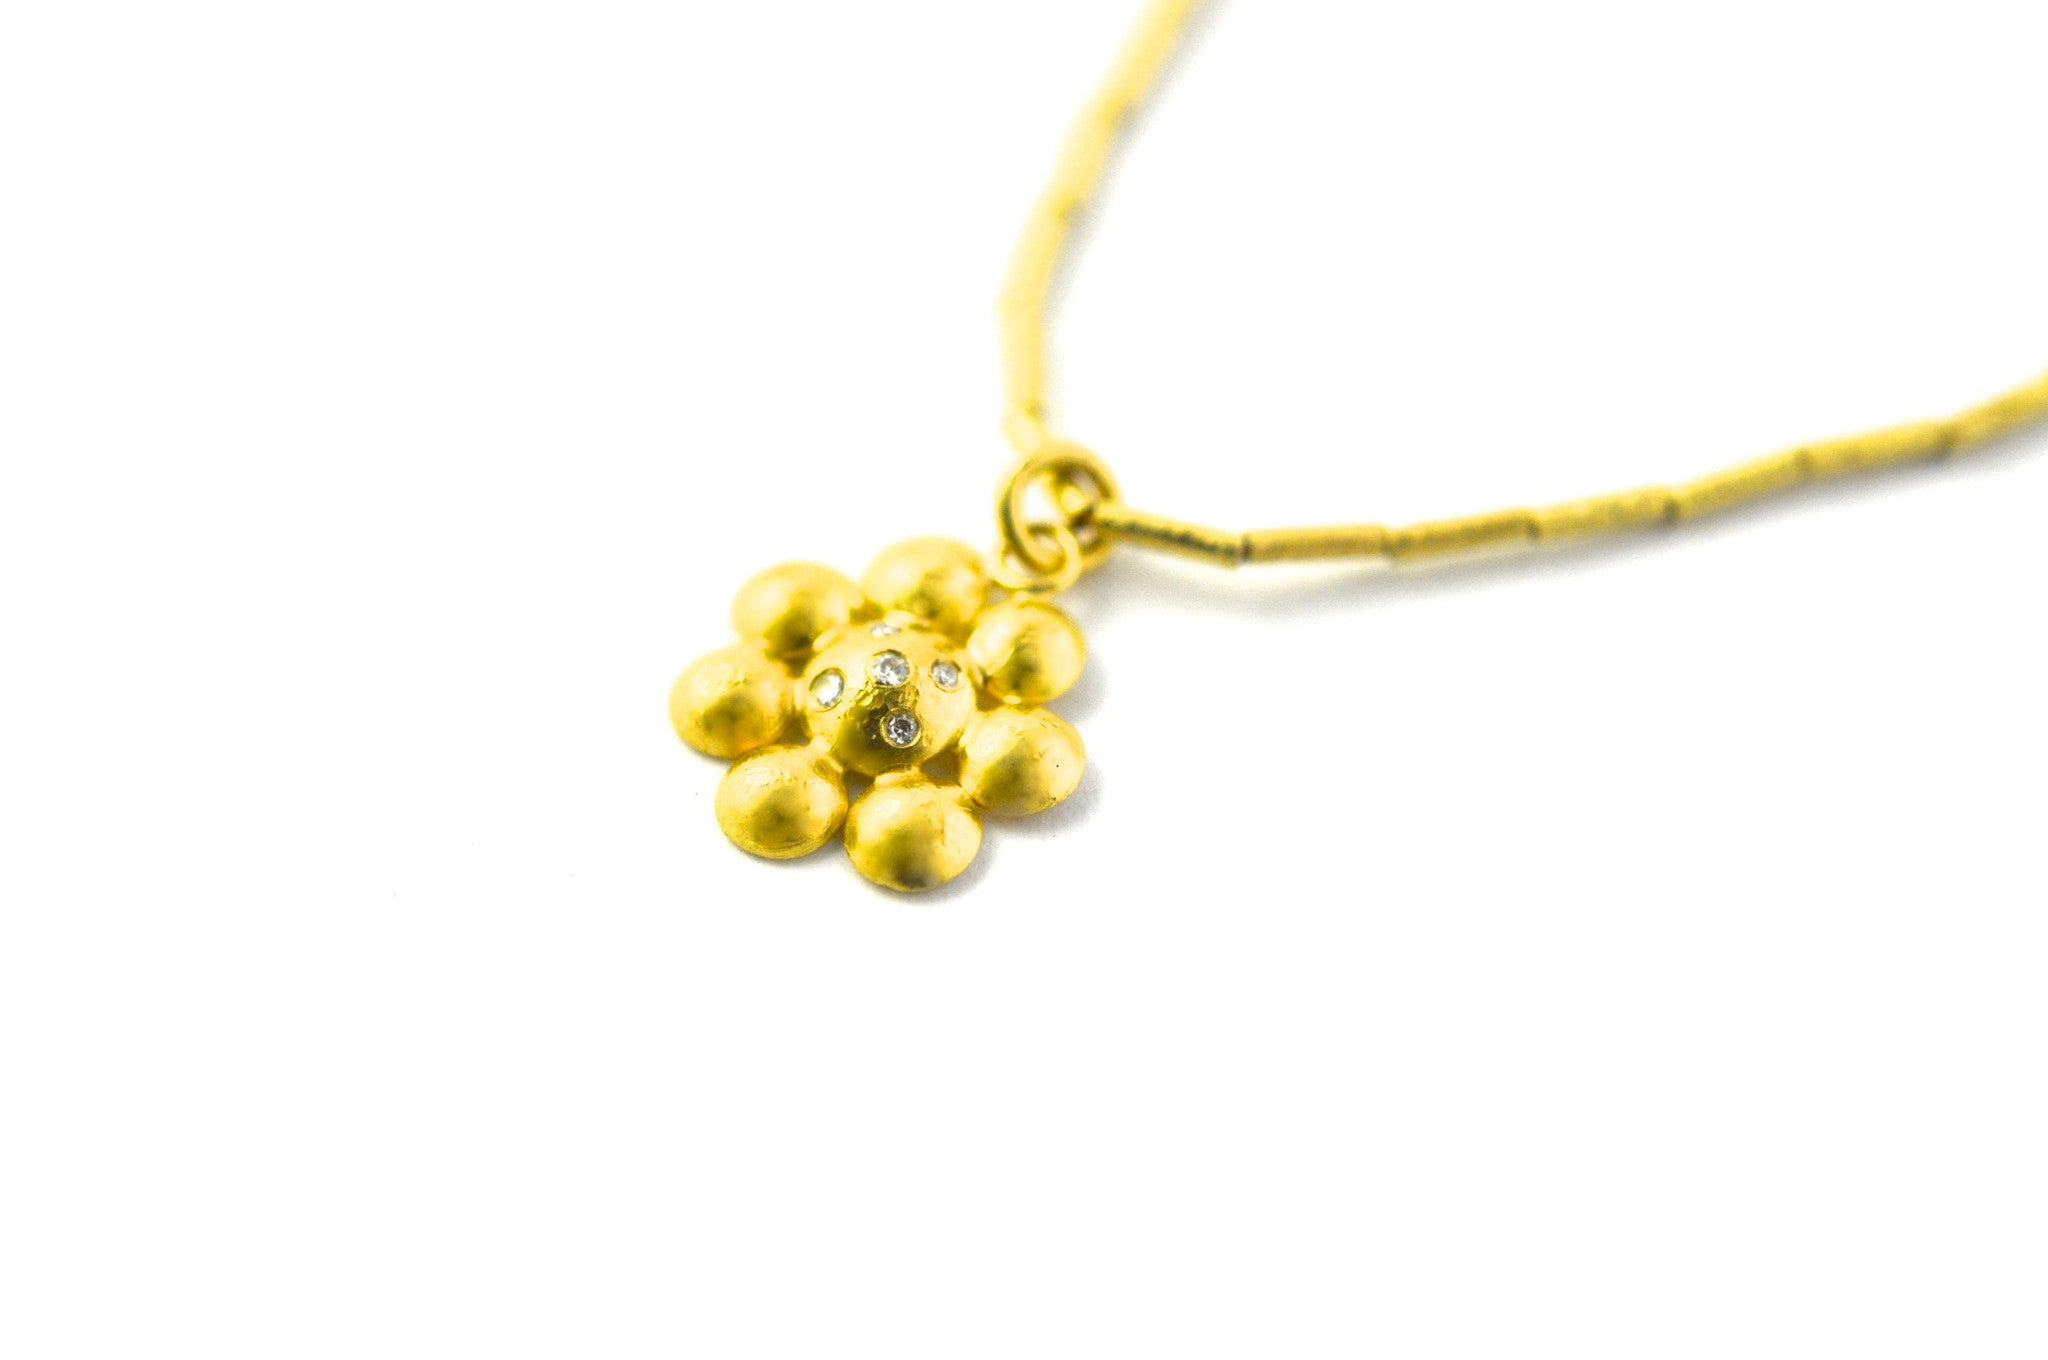 necklace  / gold 22k with diamonds rosette pendant